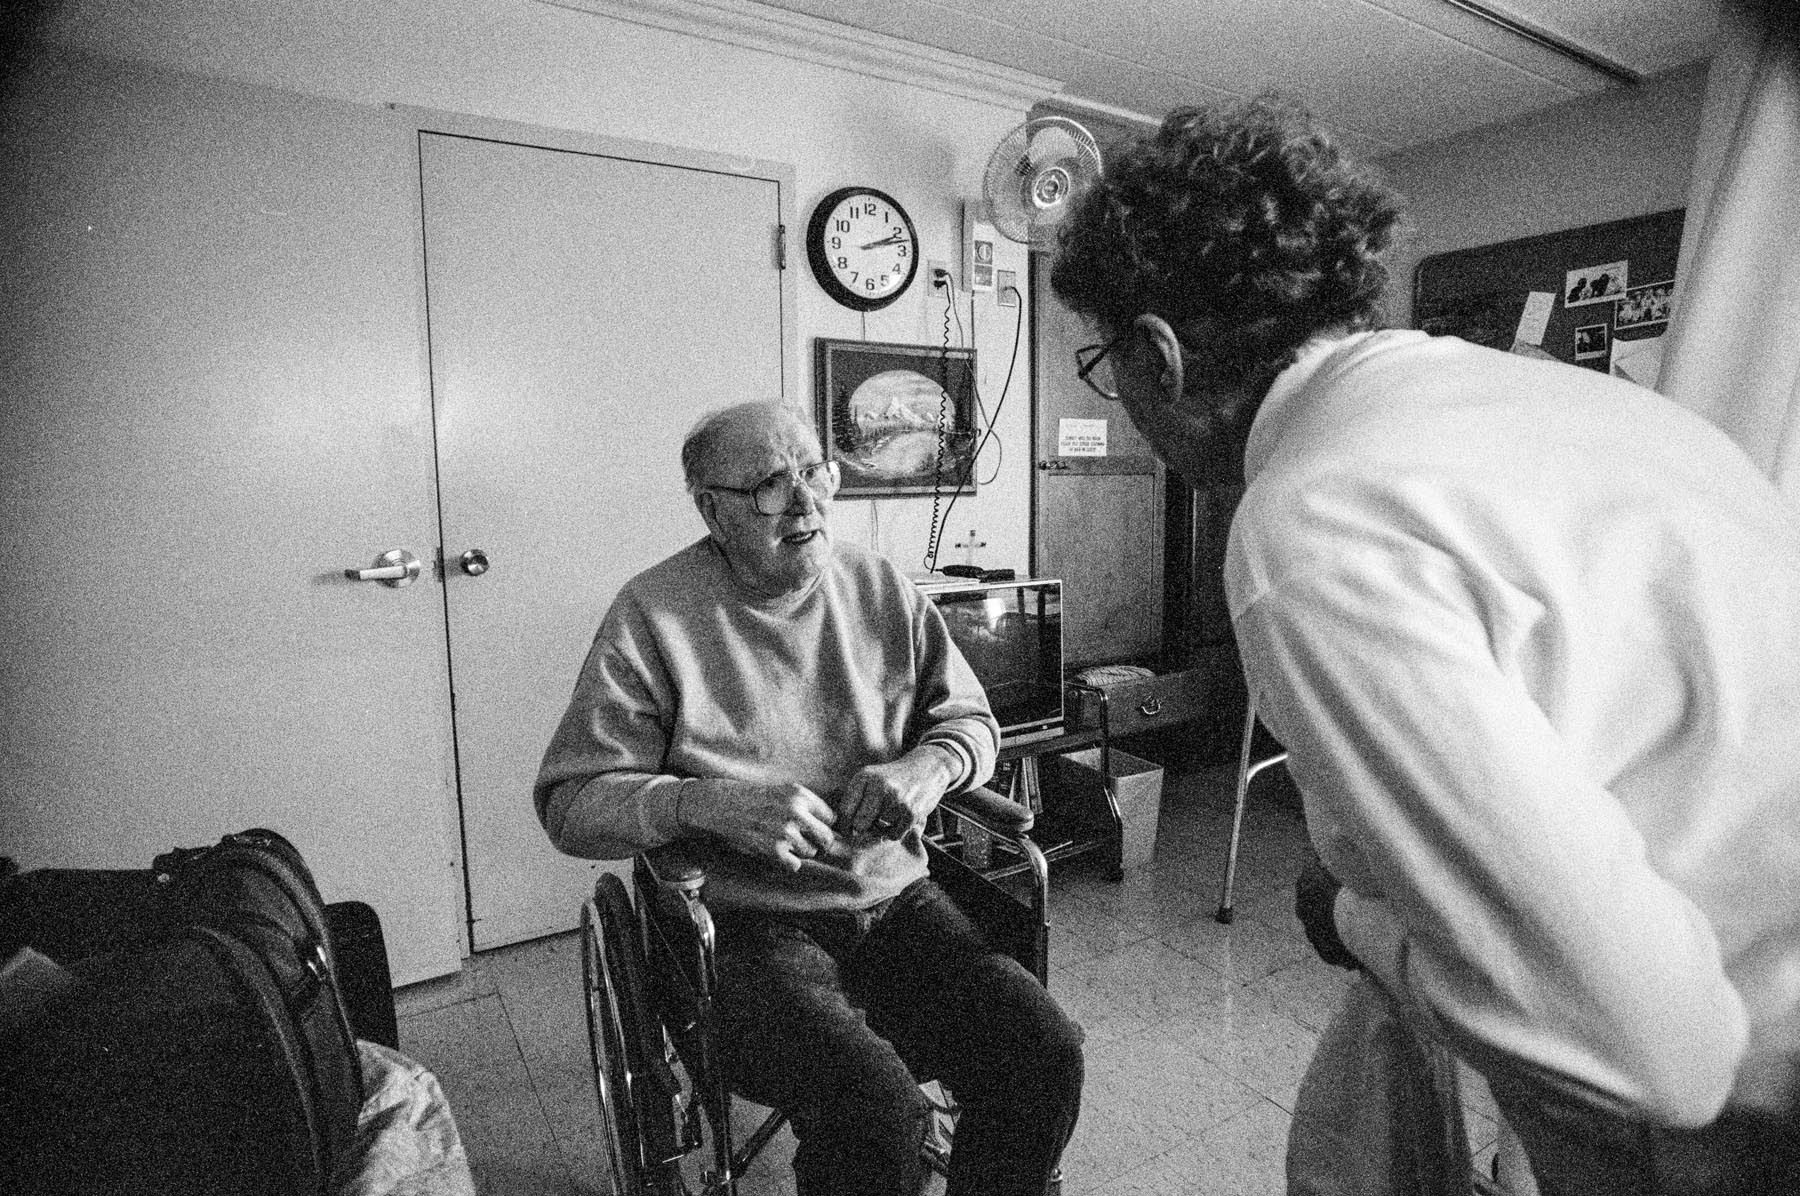 Harry and Audrey, Nursing Home, Omro Care Center, Omro, WI, 2001